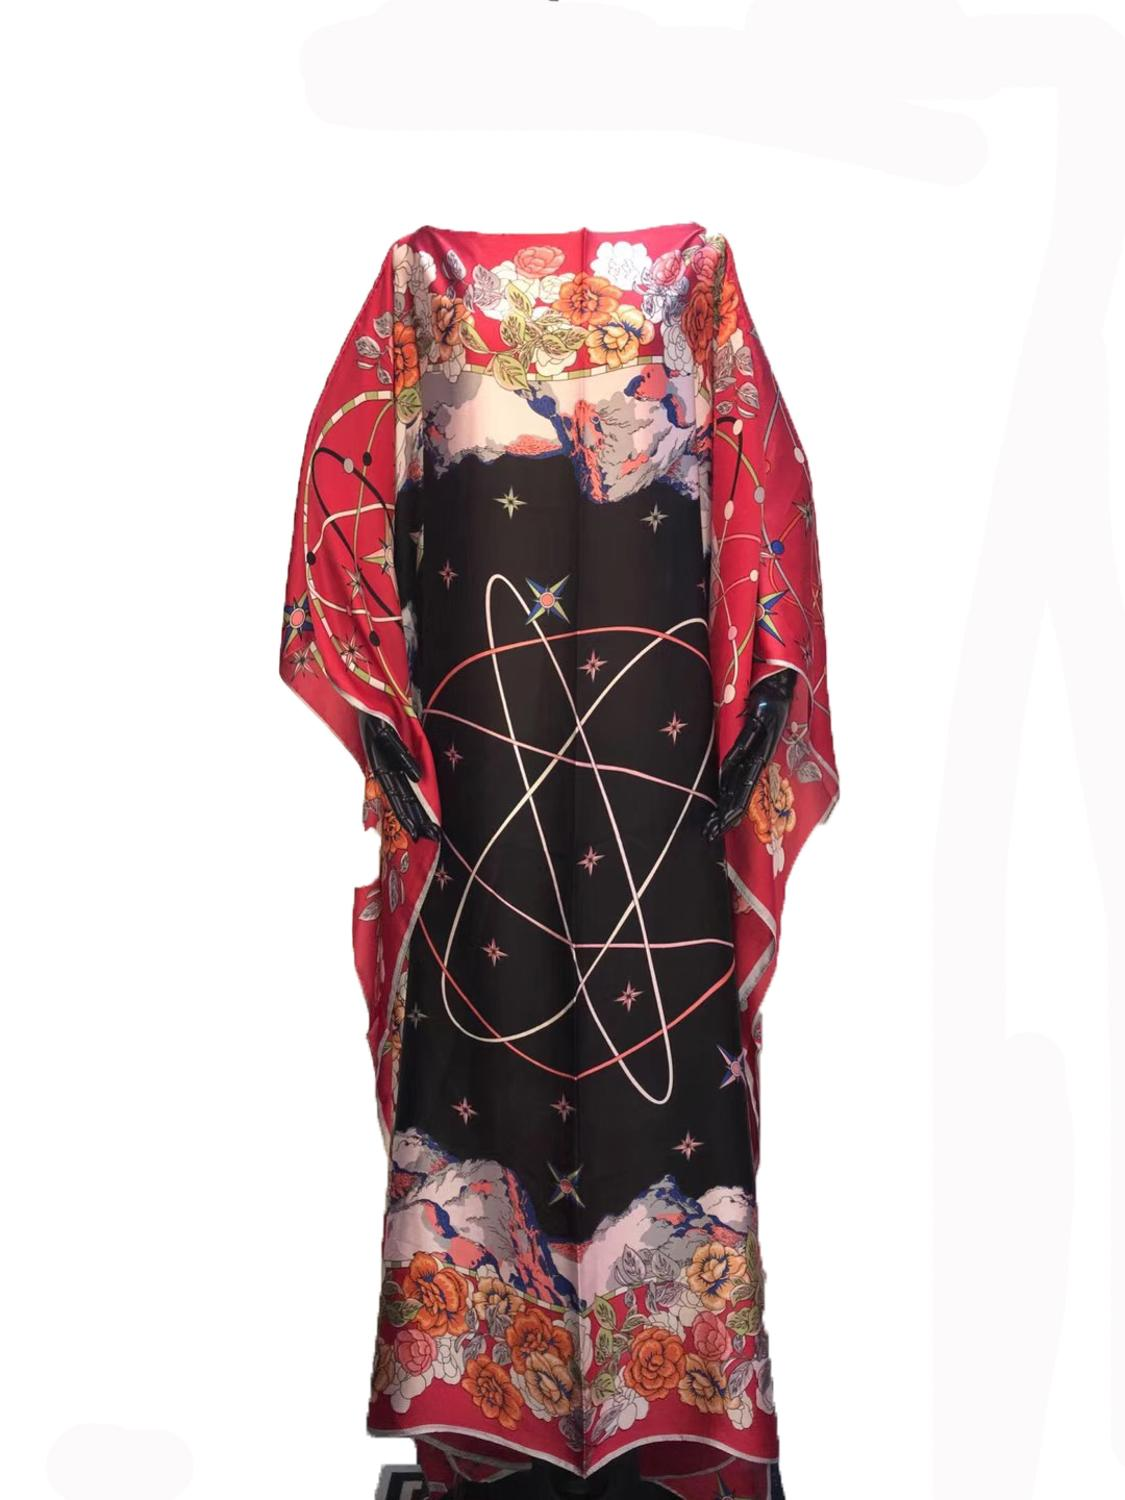 Oversize Modern Fashion Printed Silk Kaftan Dresses Loose Style Dashiki Women's Silk Dresses African Dresses For Women